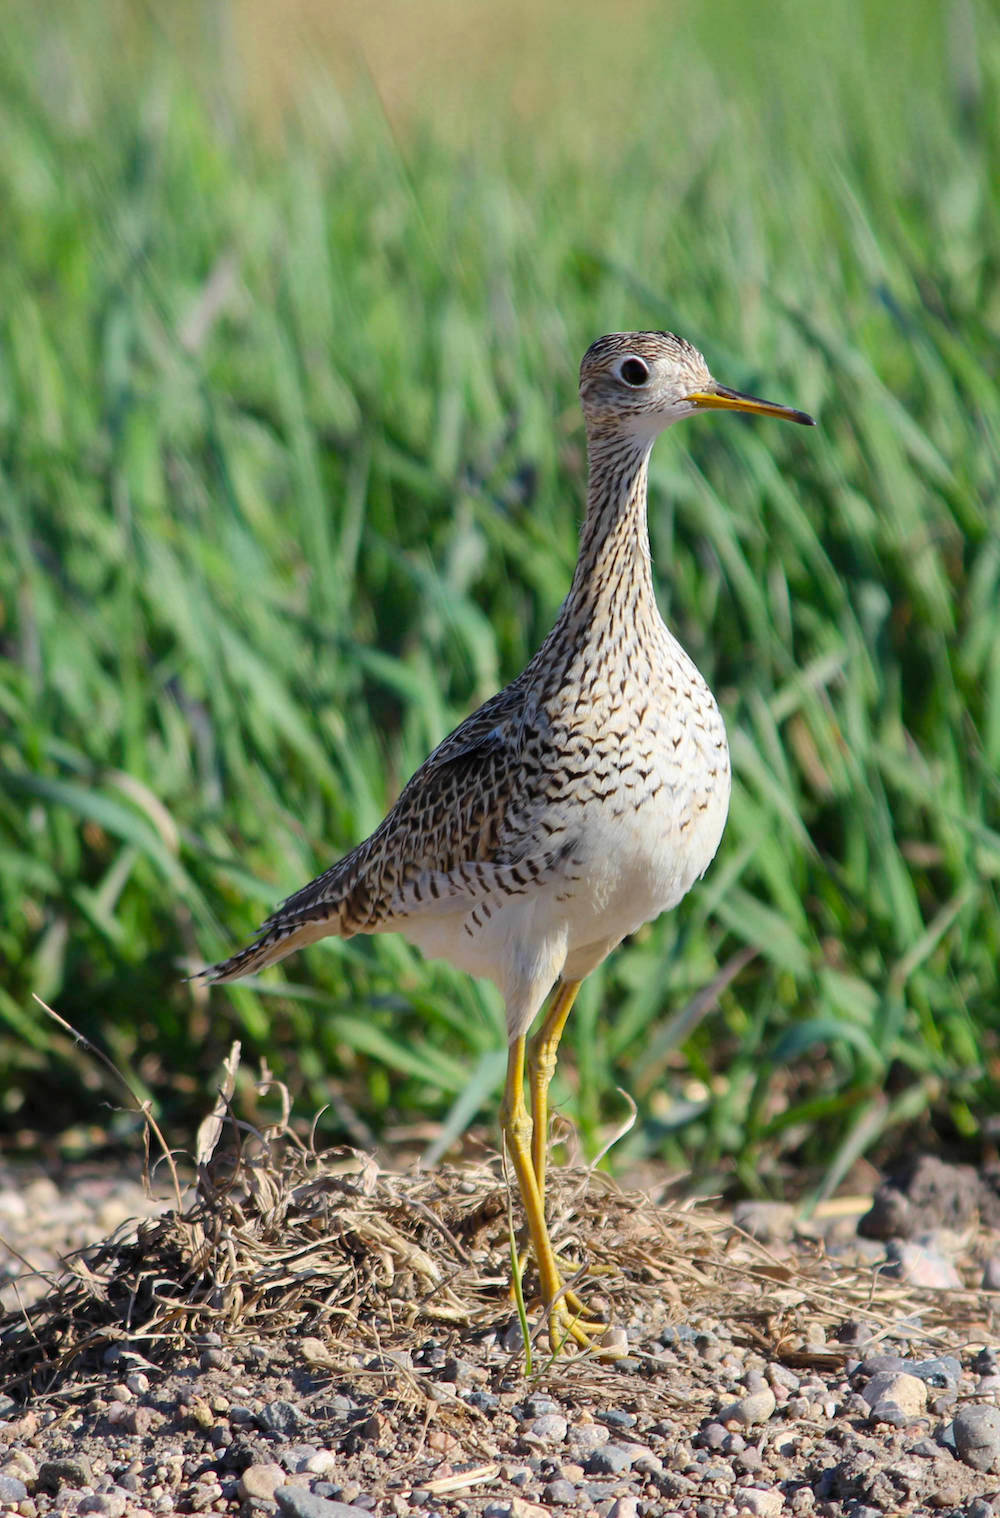 A wetland birdbird speckled with white, dark brown, tan, and gray with long yellow legs and a long beak stands on a mound of gravel. In the background is a green agricultural field.